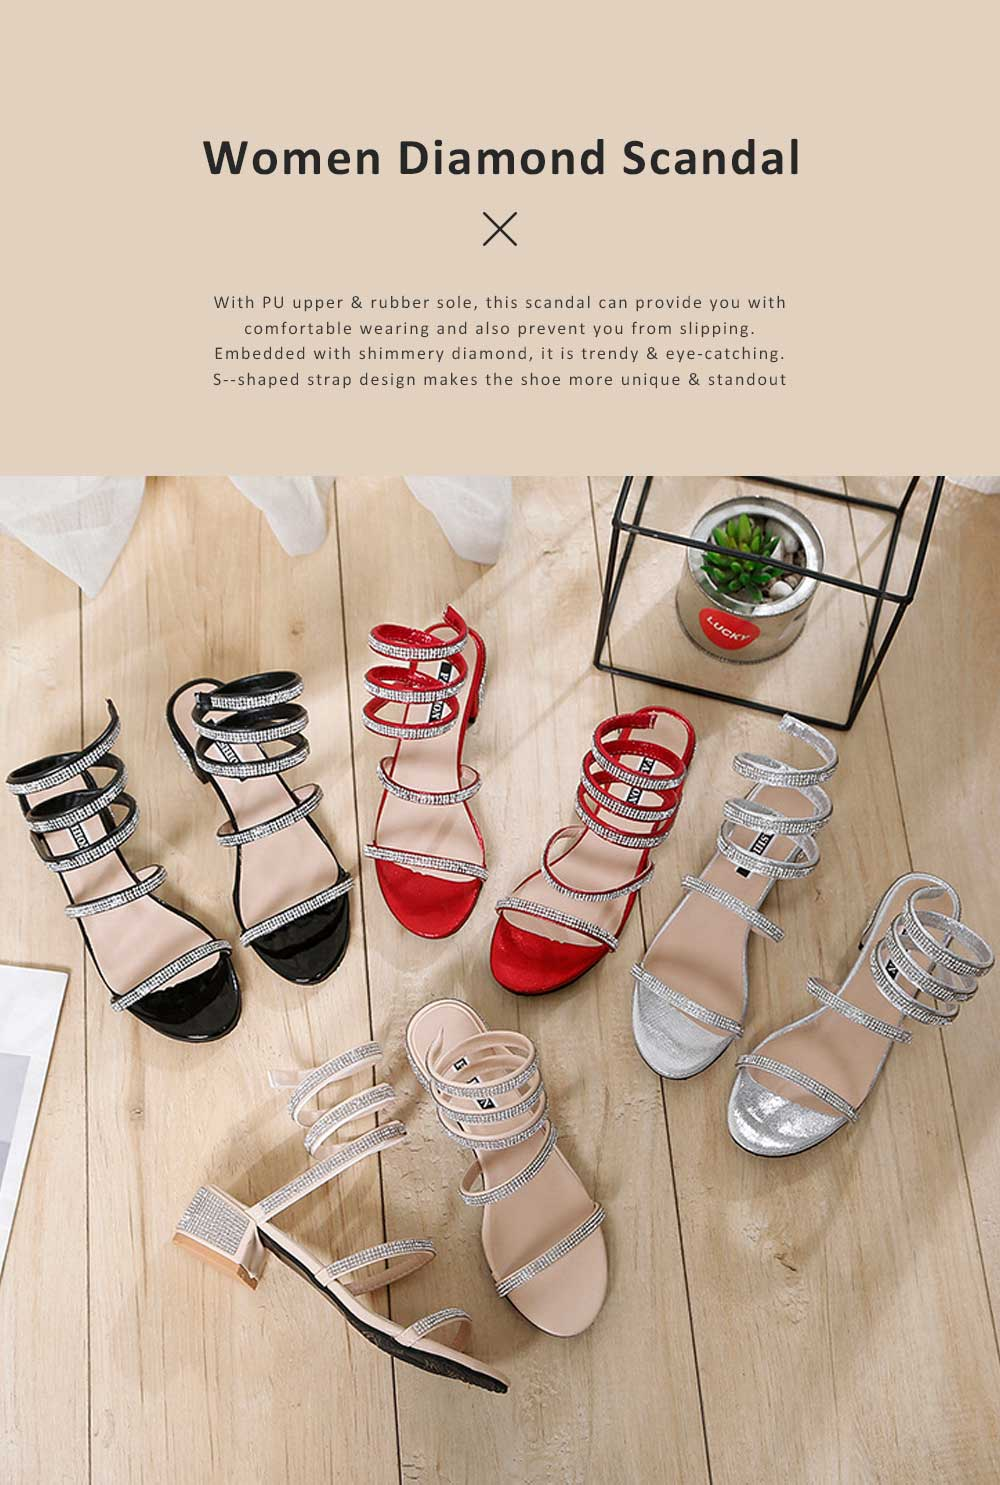 Women Sandals With S-shaped Strap PU Rubber Diamond Shoe Fashionable Thick-Heel Open Toe Shoe 0